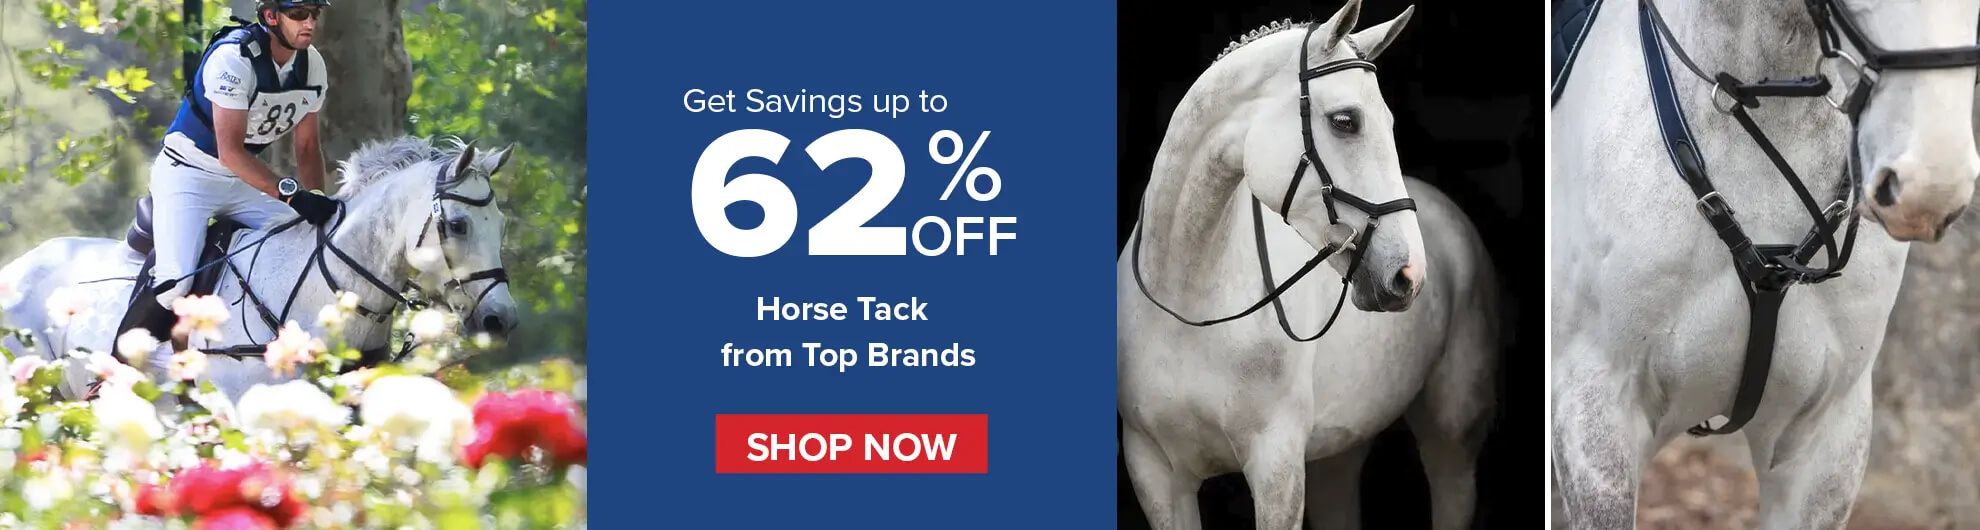 Shop for Top Brand Horse Tack on Bit of Britain